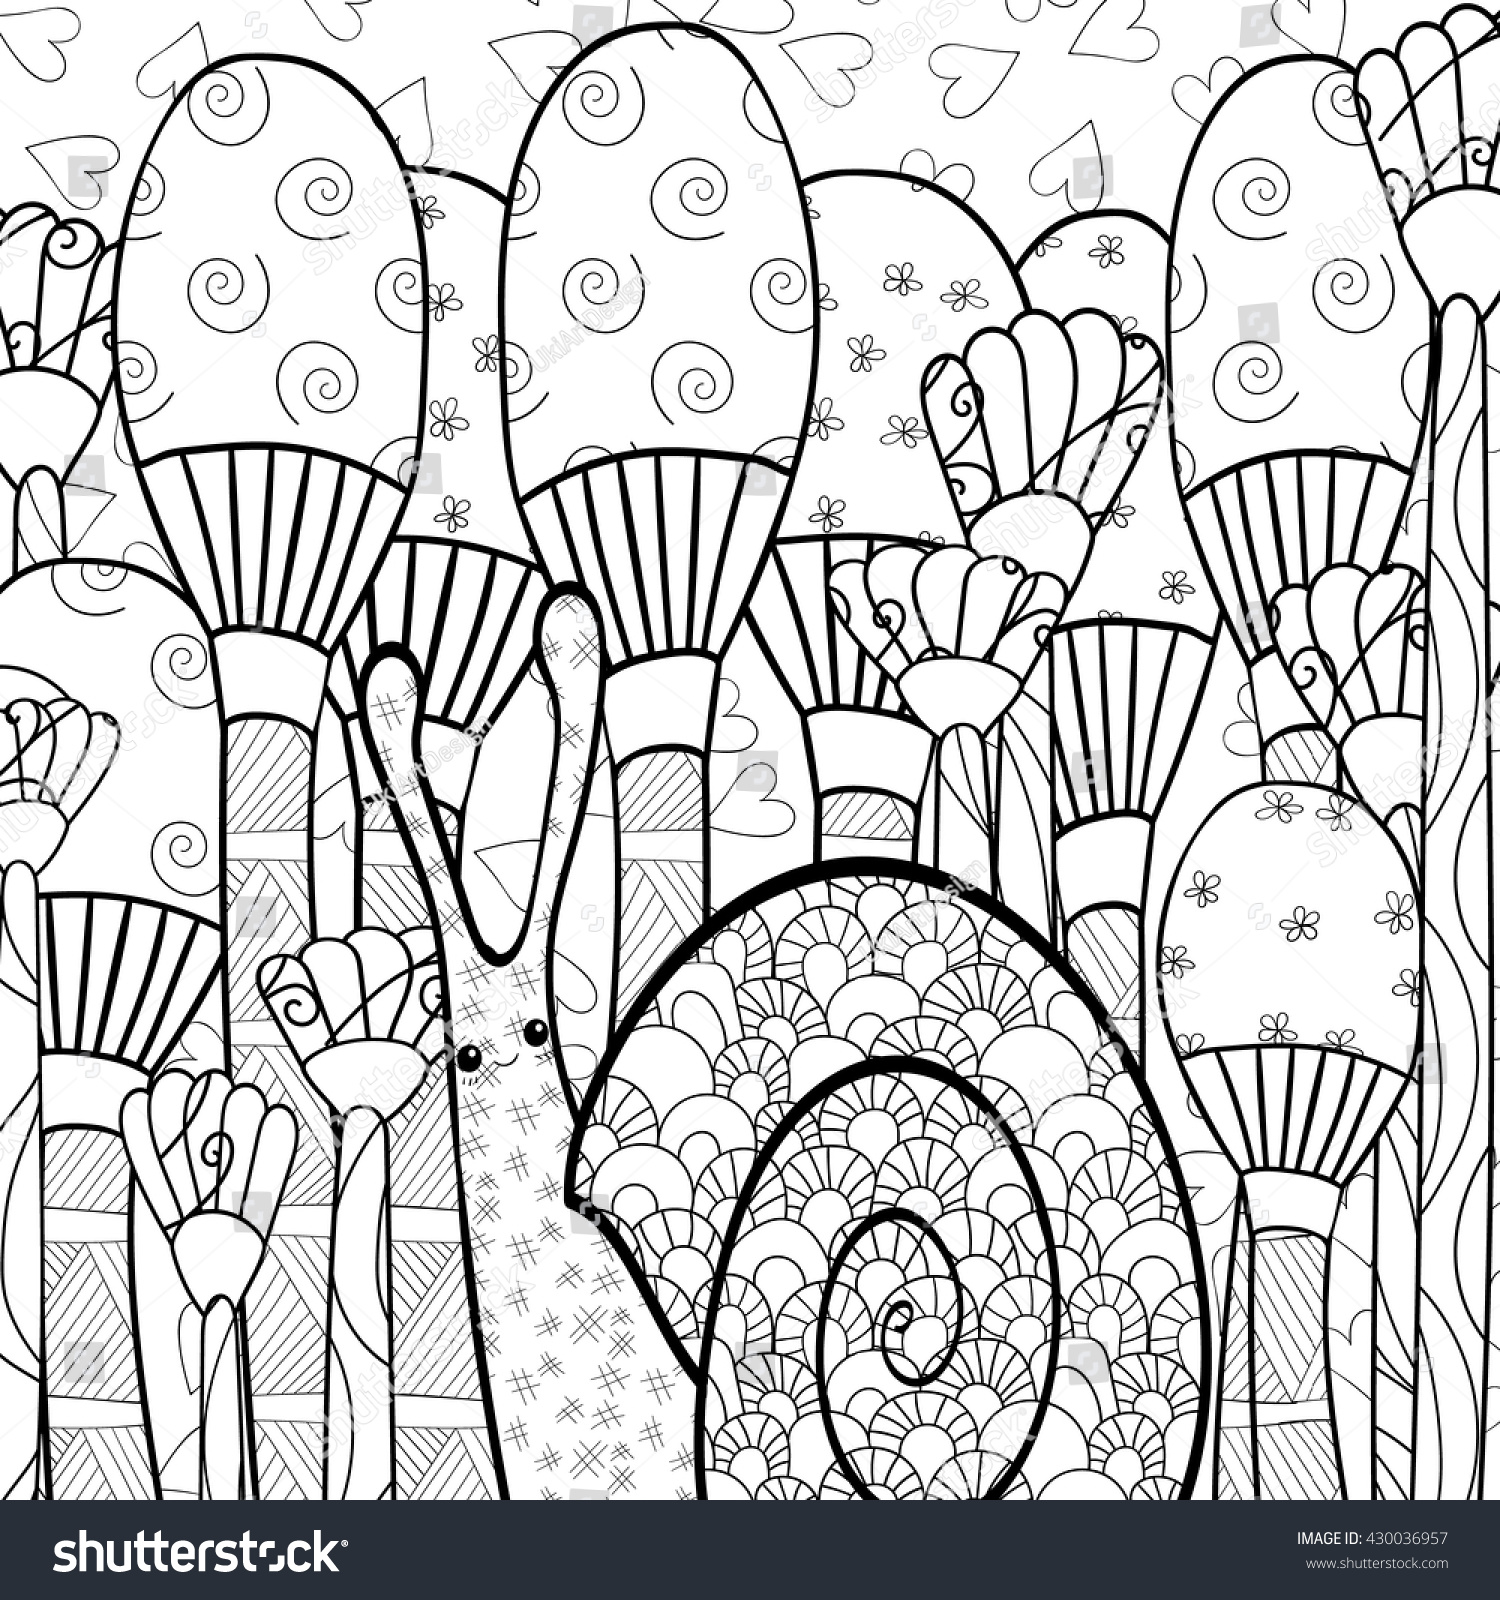 Adult Coloring Page Cute Snail In Mushroom Whimsical Garden Line Art Vector Illustration Soft Intricate